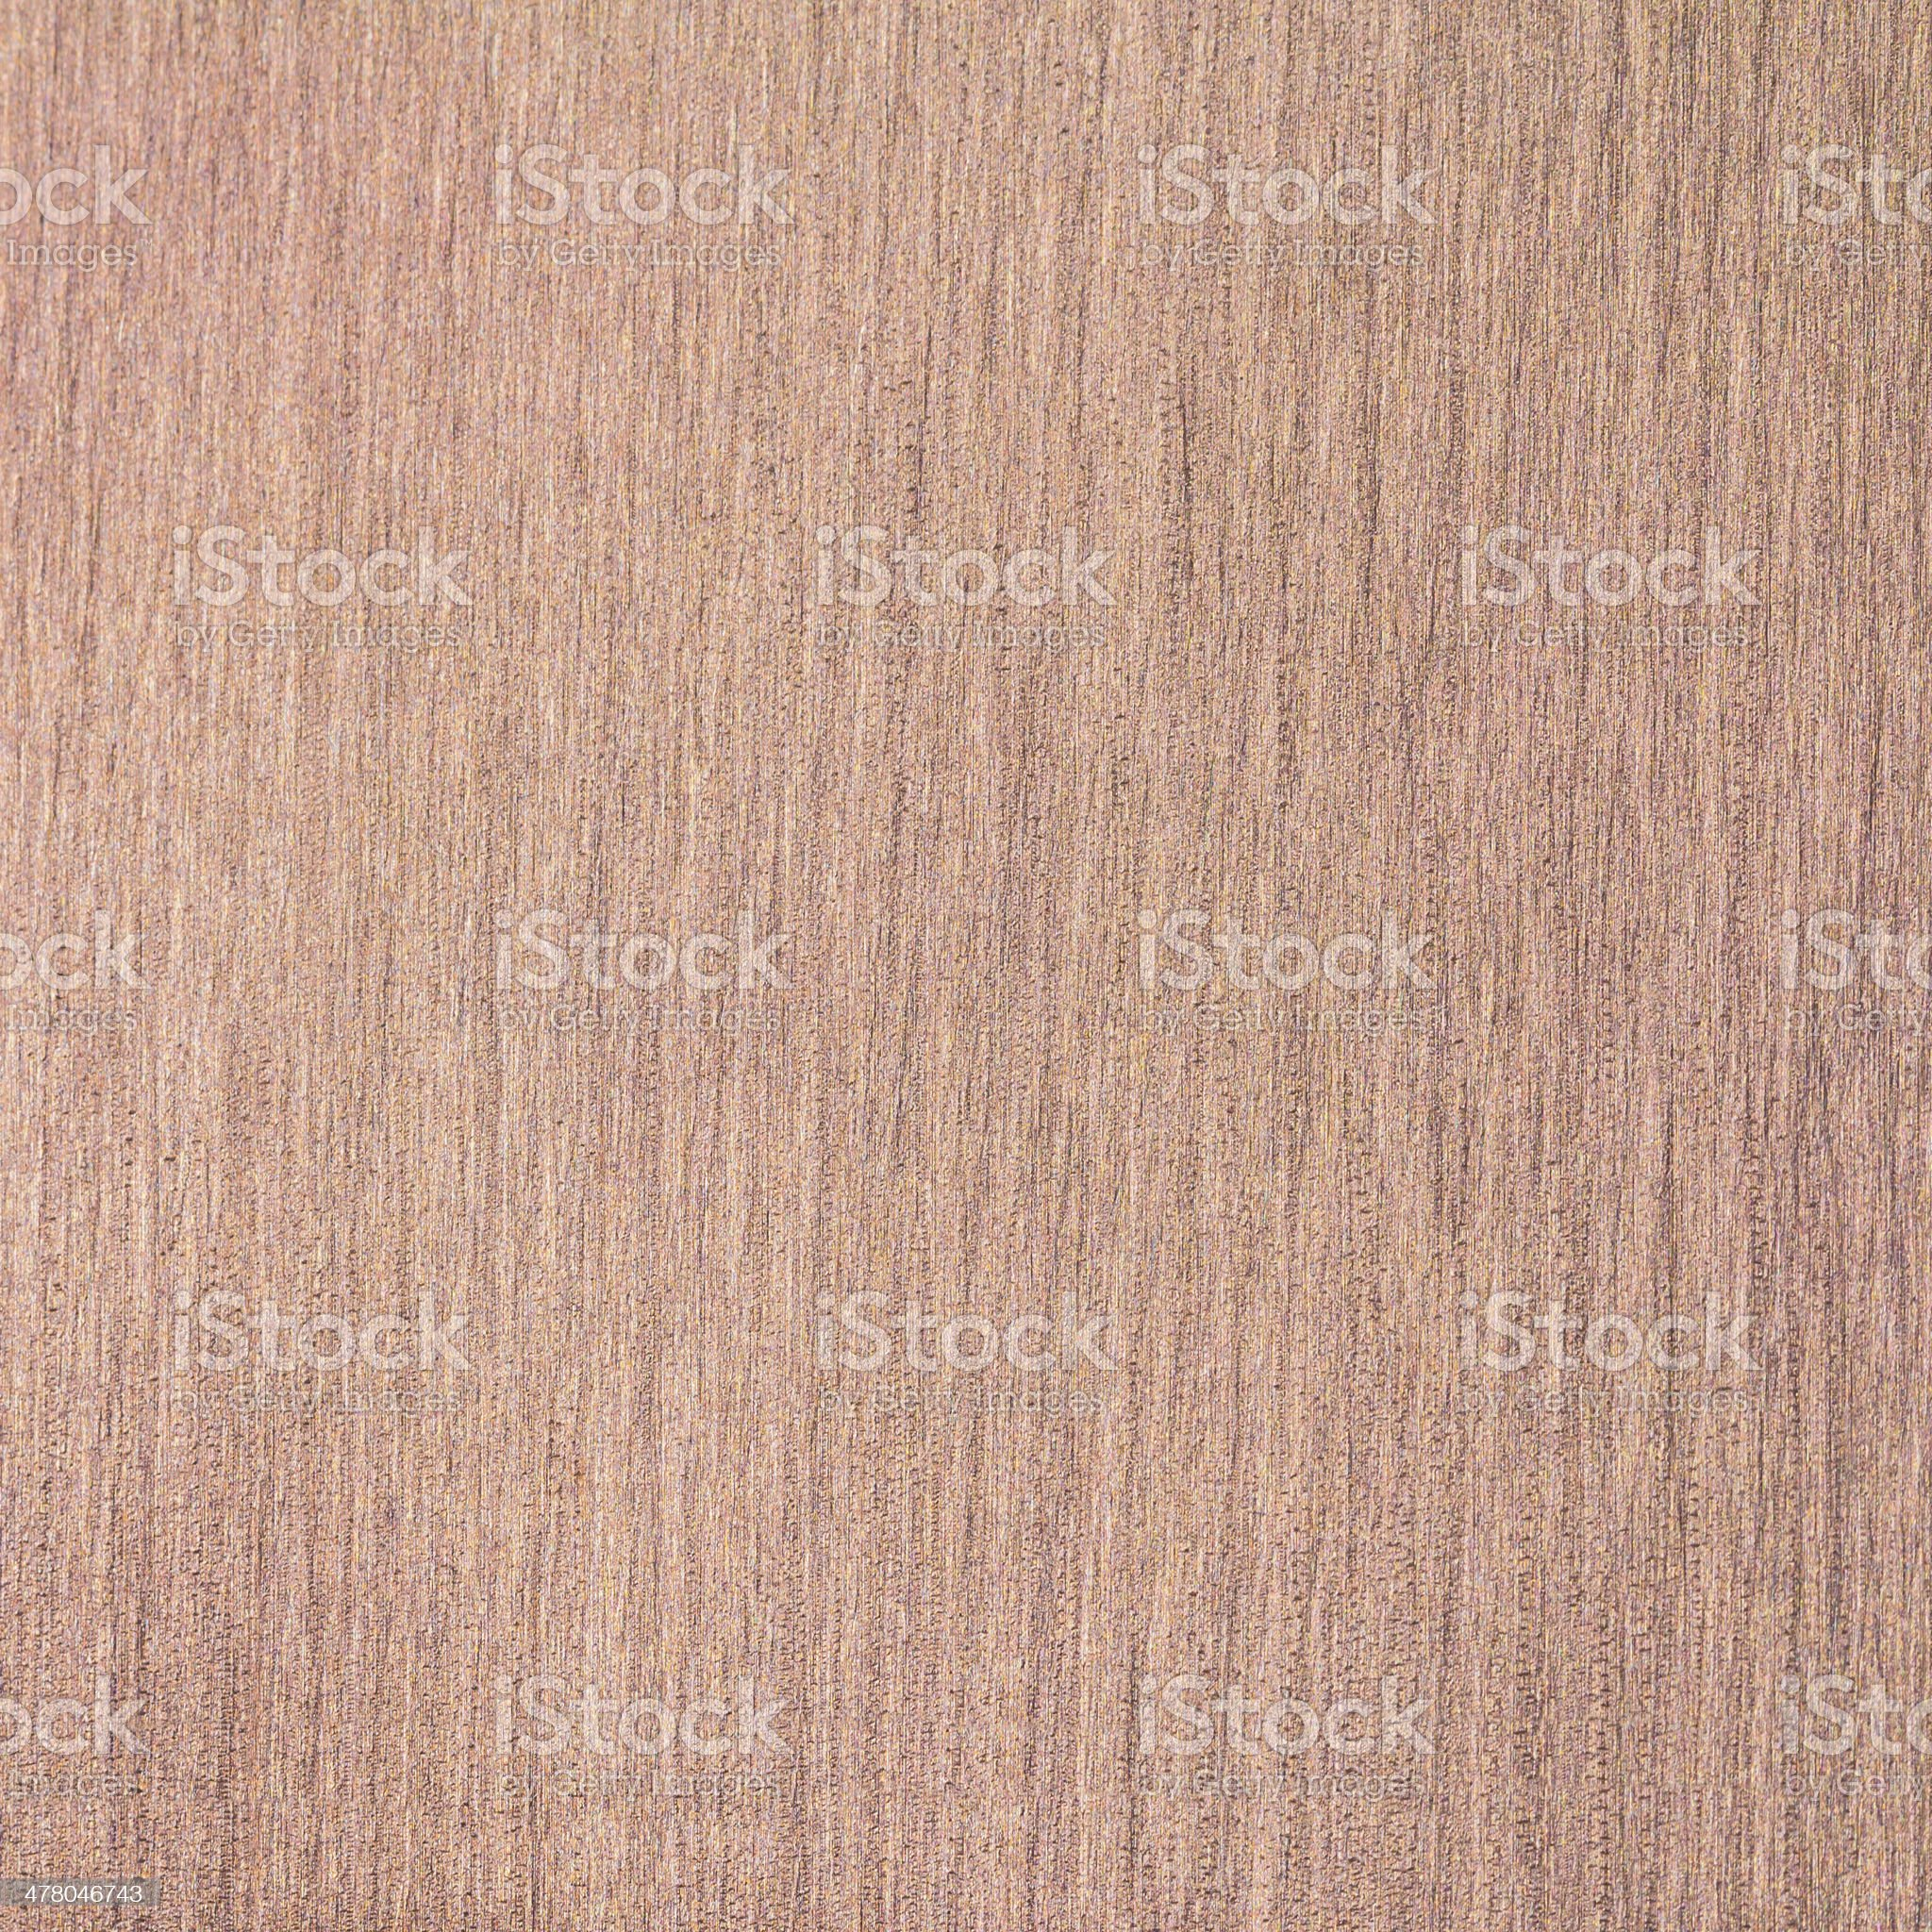 Copper foil (sheet) texture royalty-free stock photo